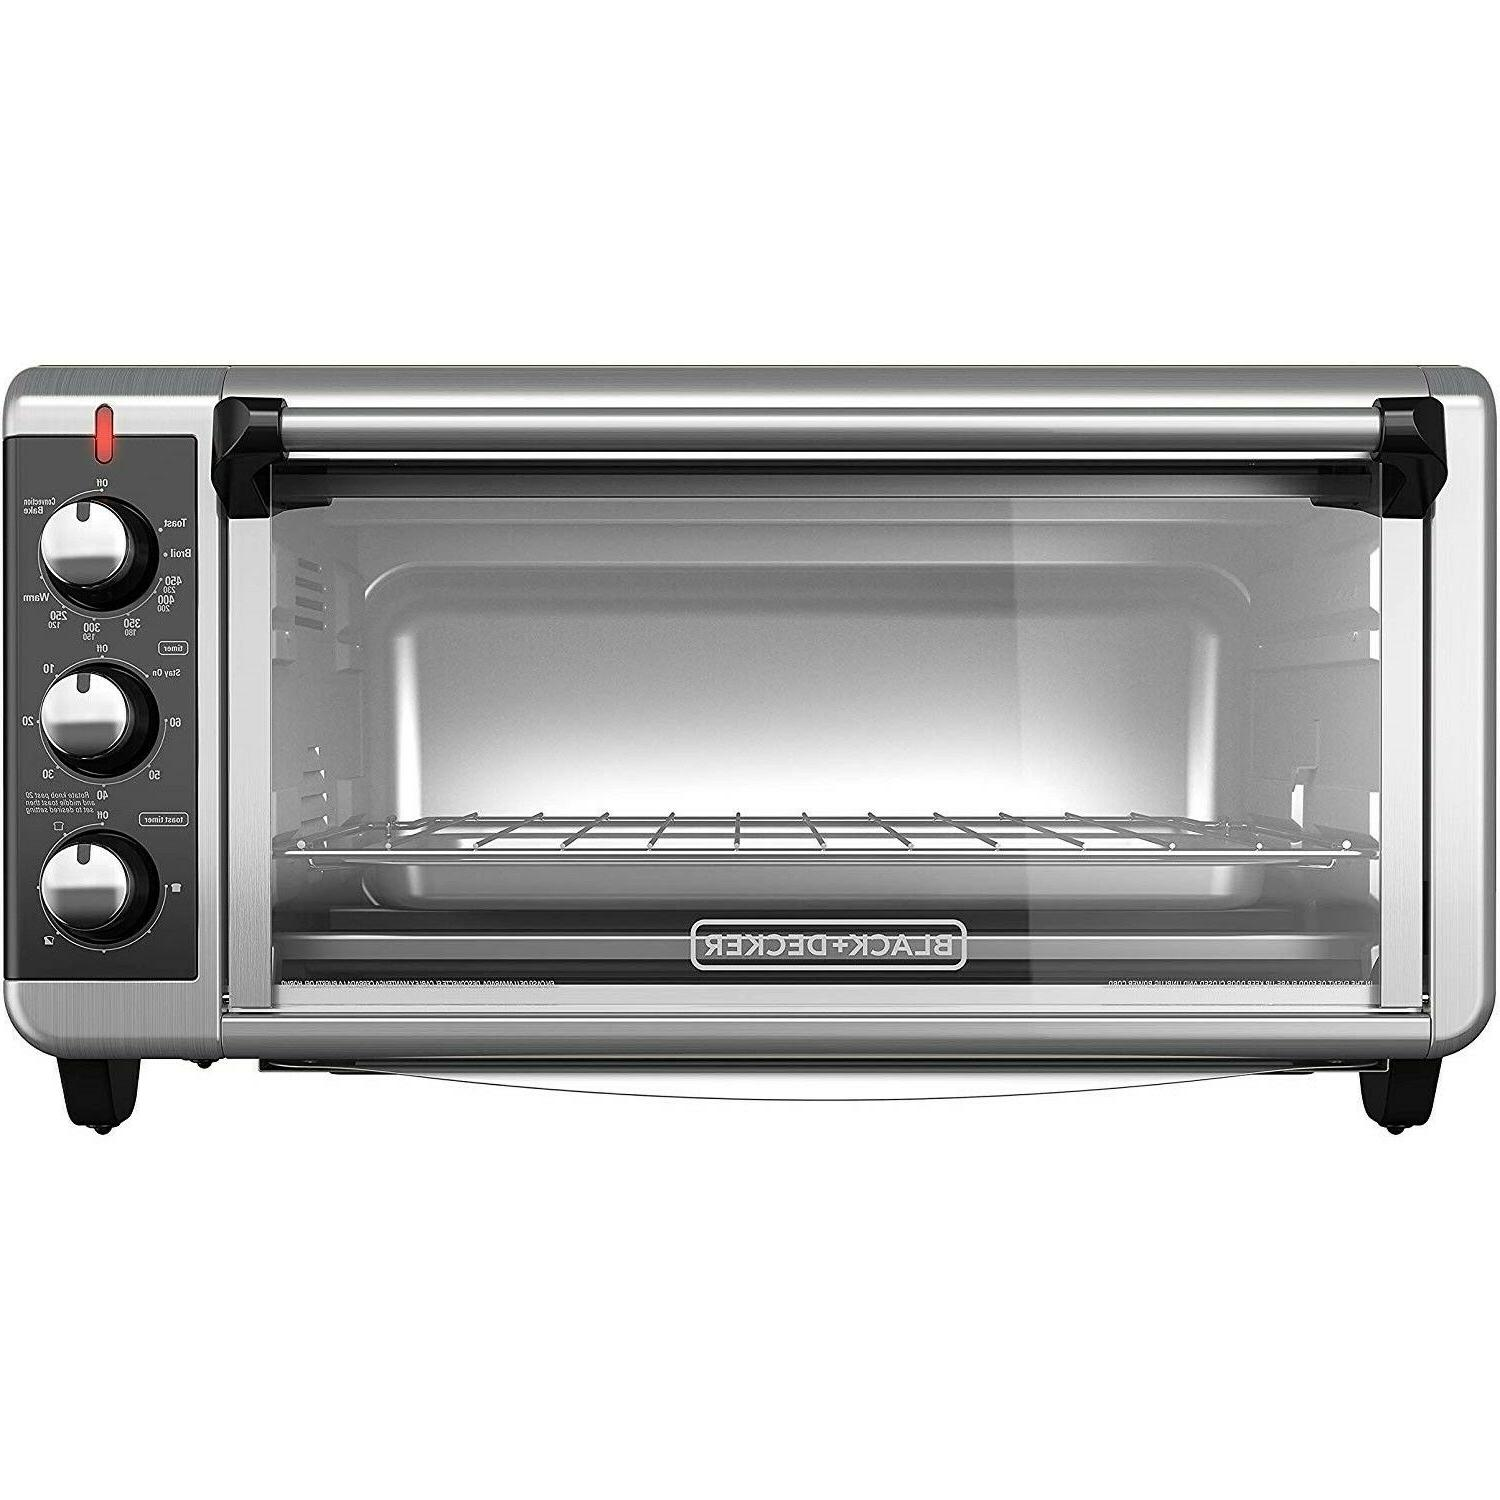 Extra Wide Toaster 8-Slice Pan Stainless